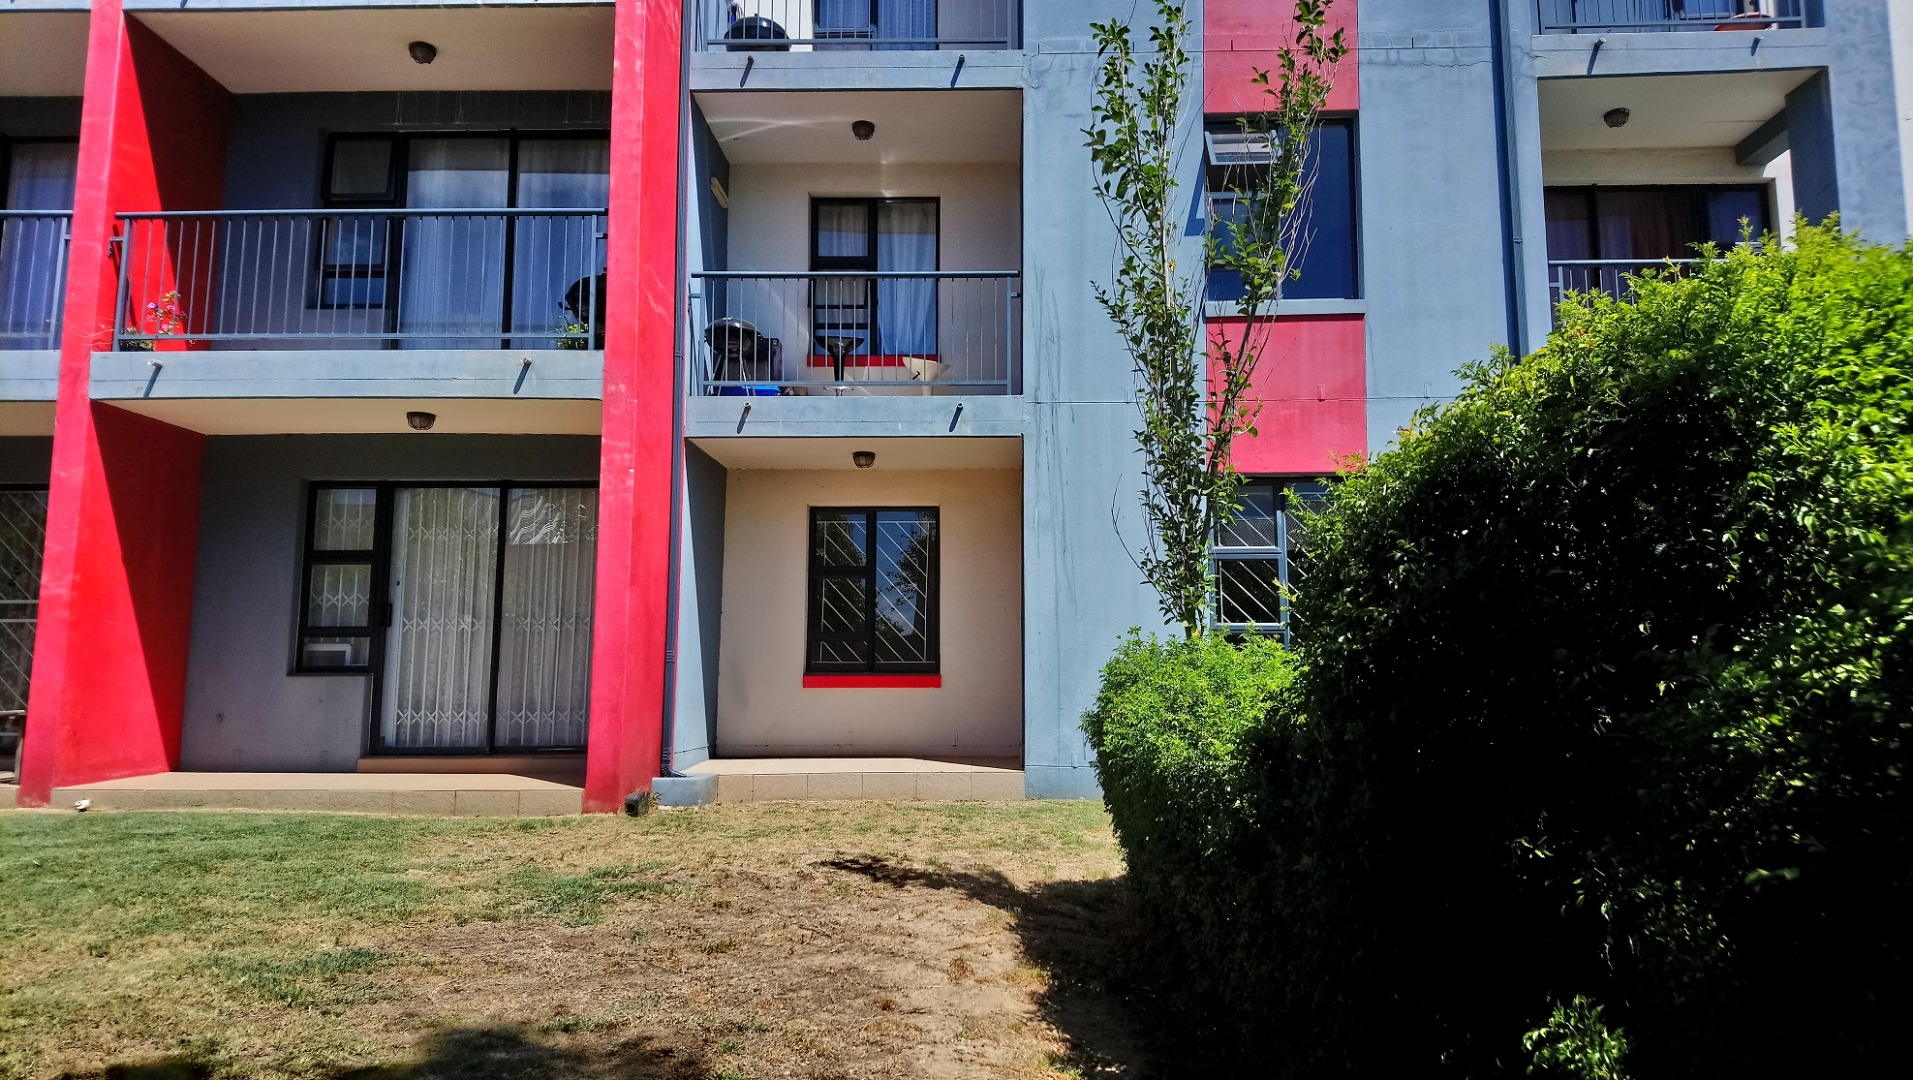 2 Bedroom Apartment / Flat For Sale in Buhrein